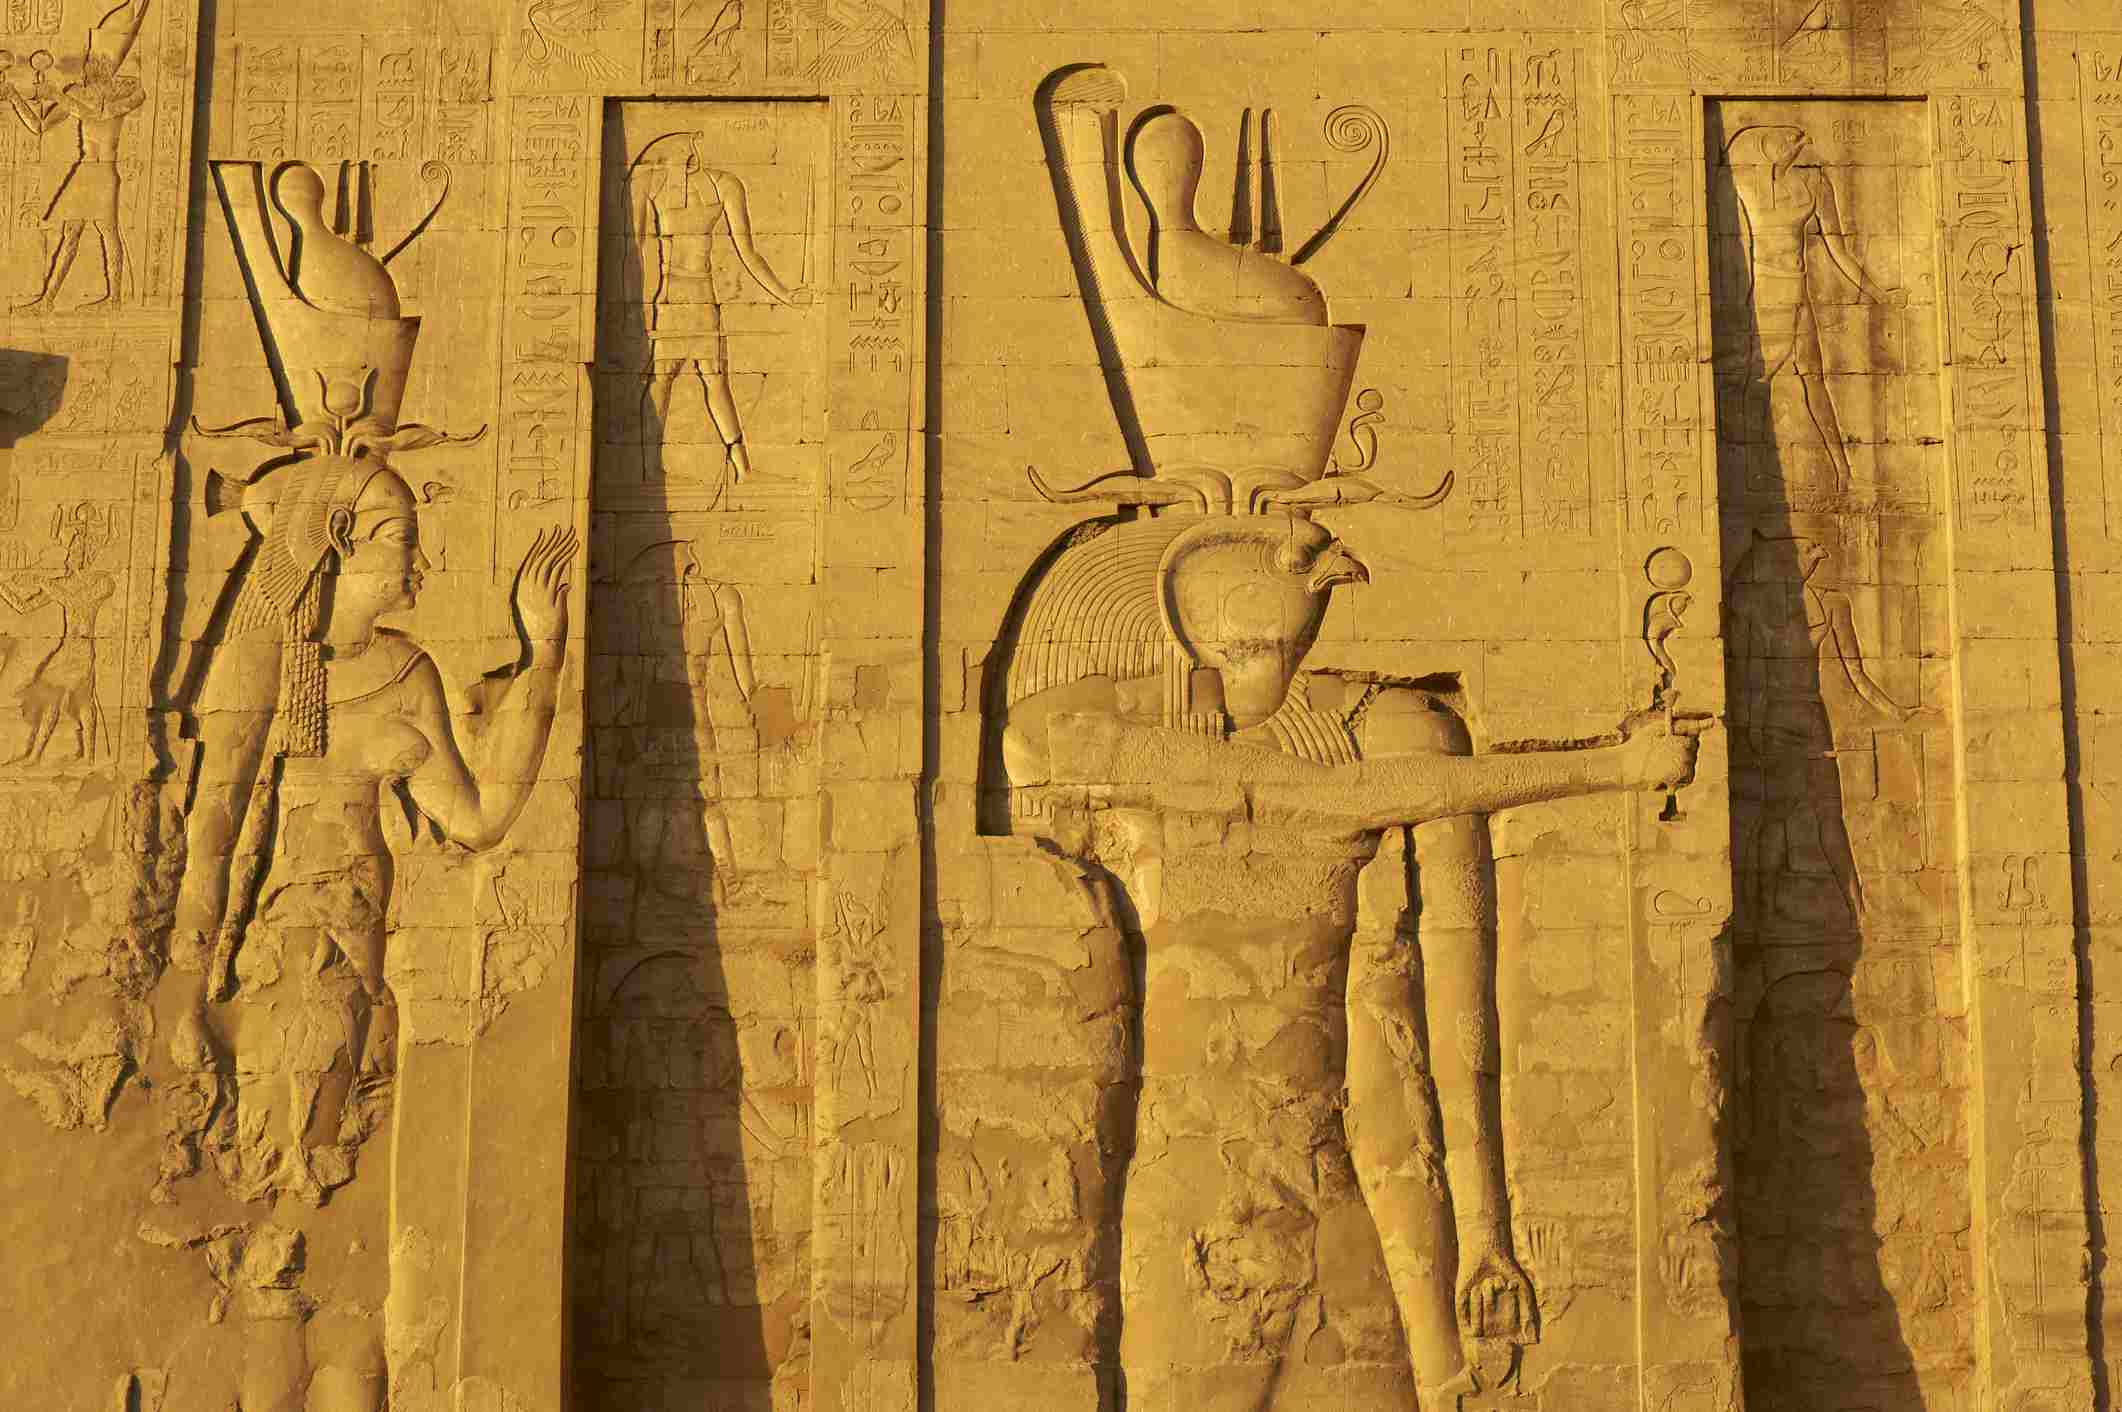 Bas relief at the Temple of Horus, Edfu, Egypt